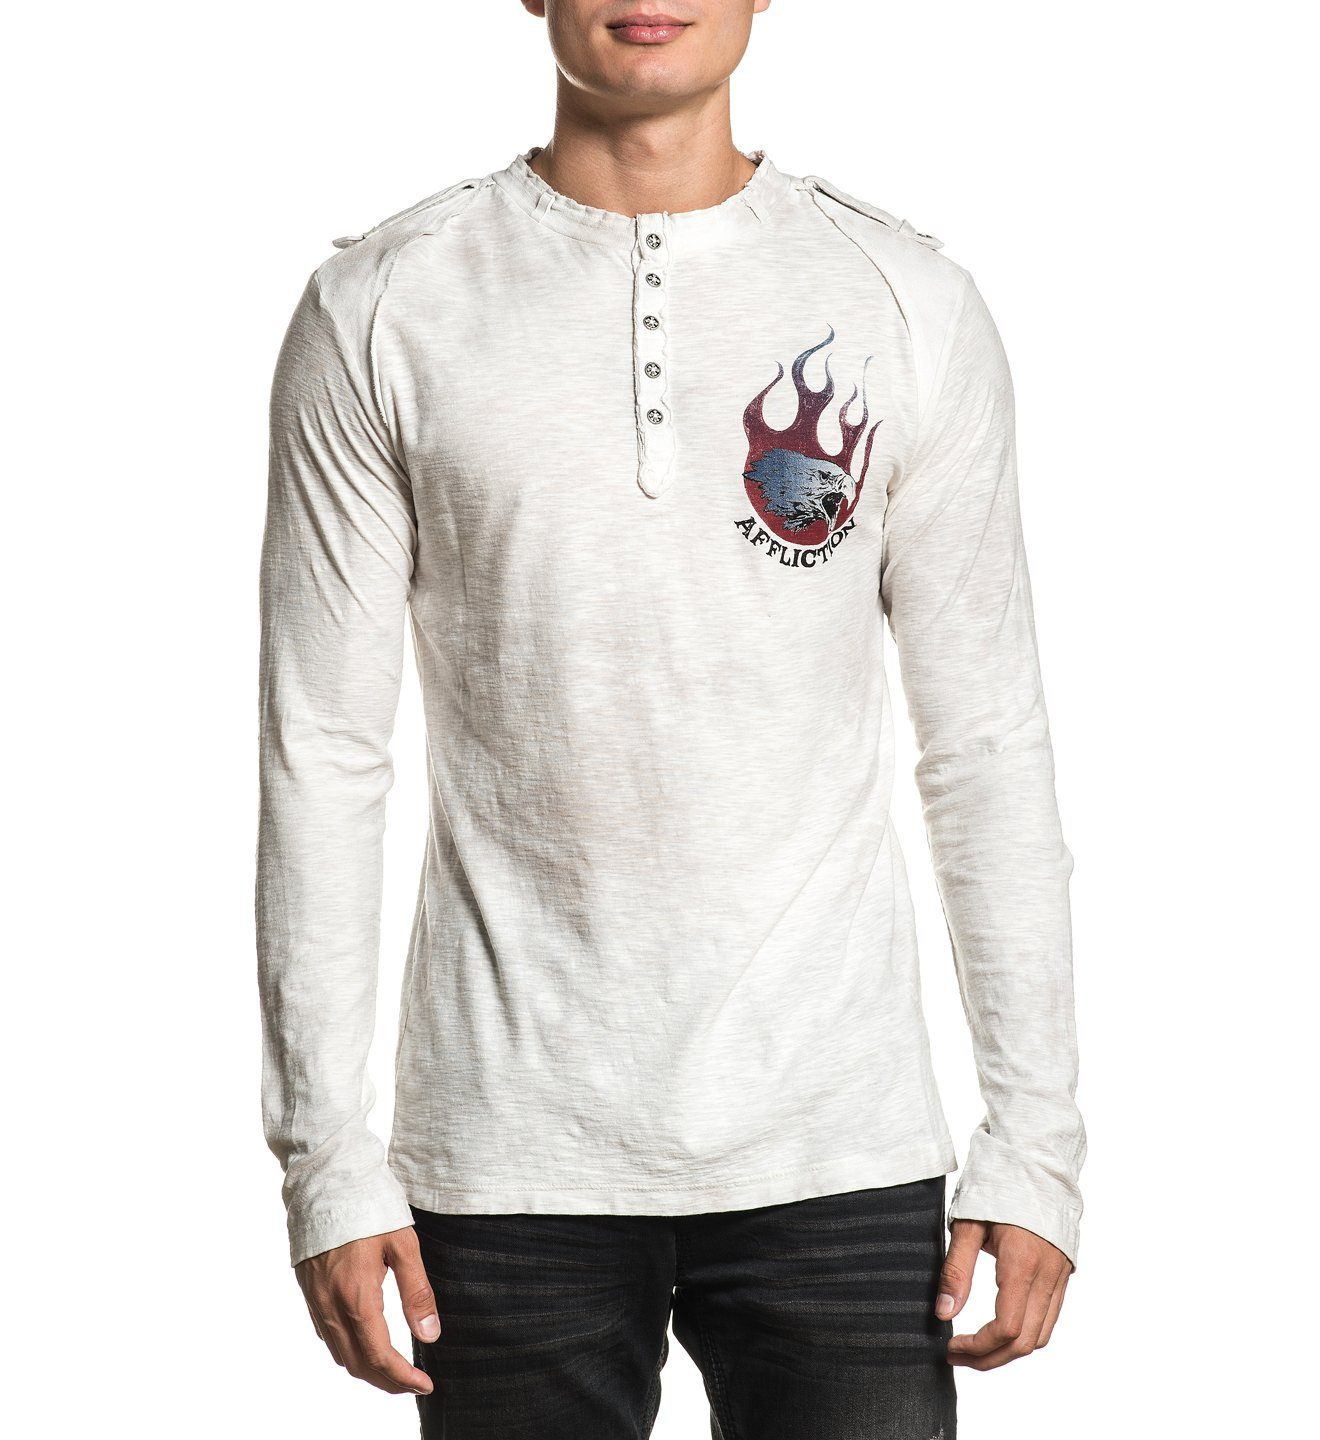 Mens Long Sleeve Tees - Fire